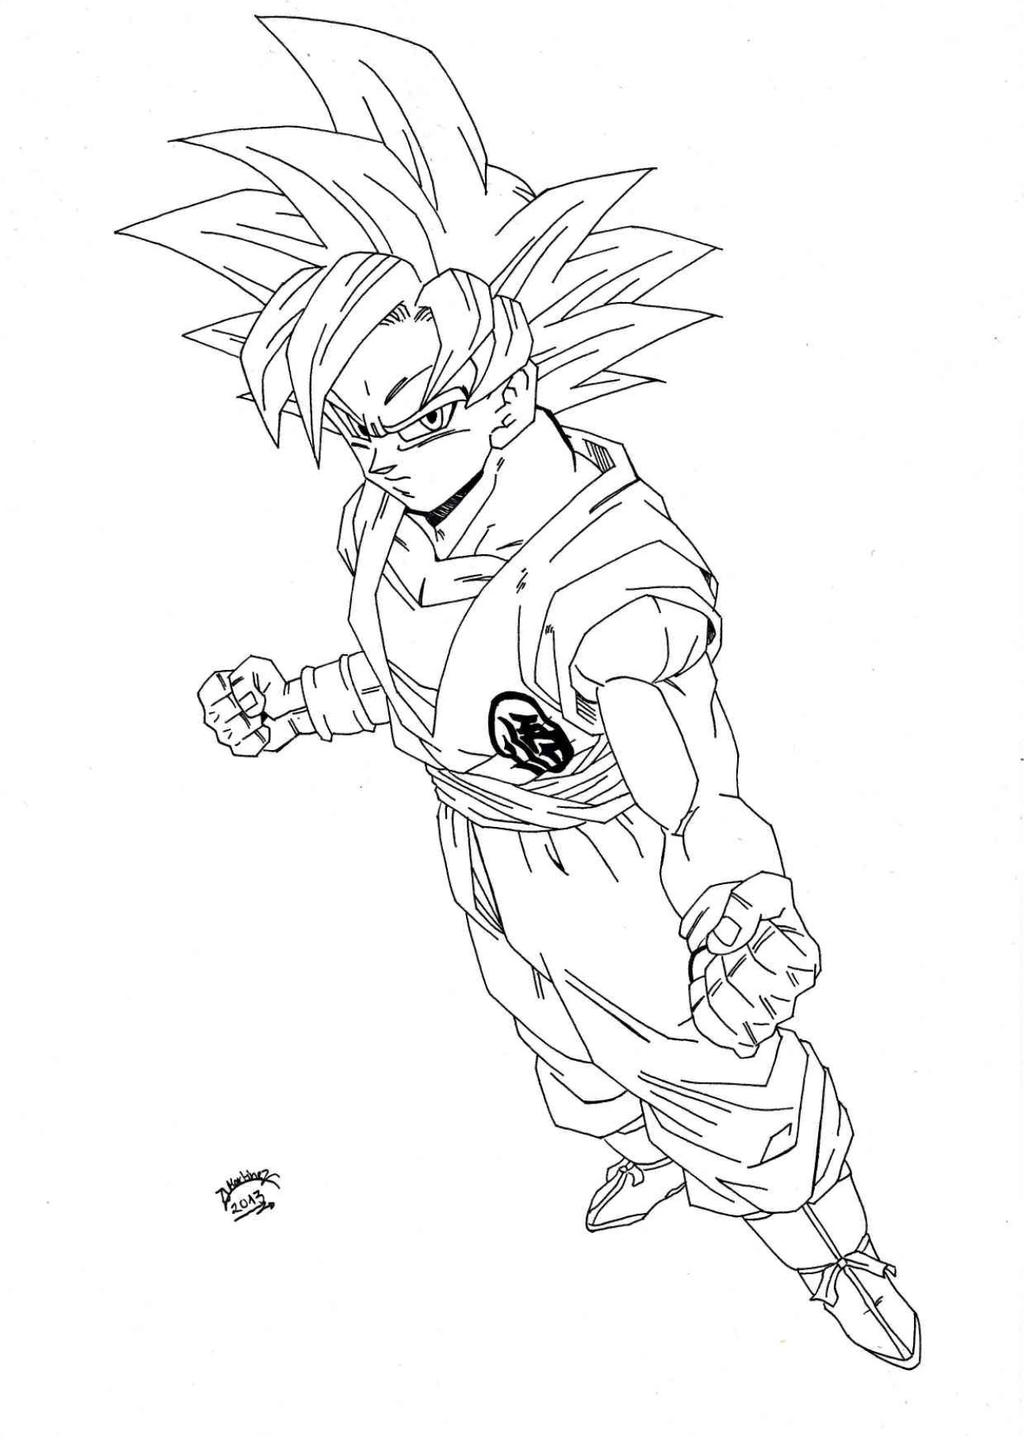 Line Art God Images : Dragonball z super sayan god lineart by triigun on